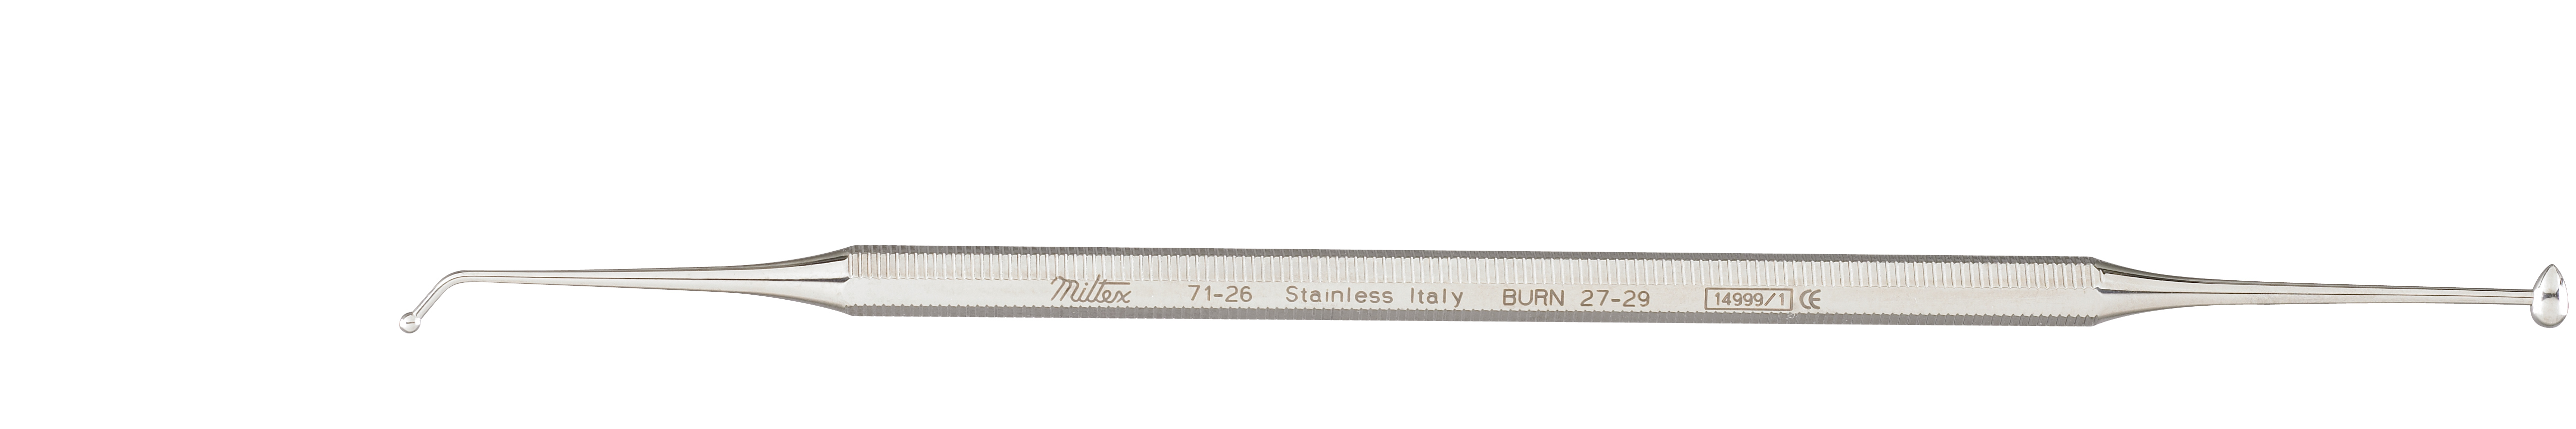 burnisher-27-29-octagonal-handle-7-sides-serrated-71-26-miltex.jpg